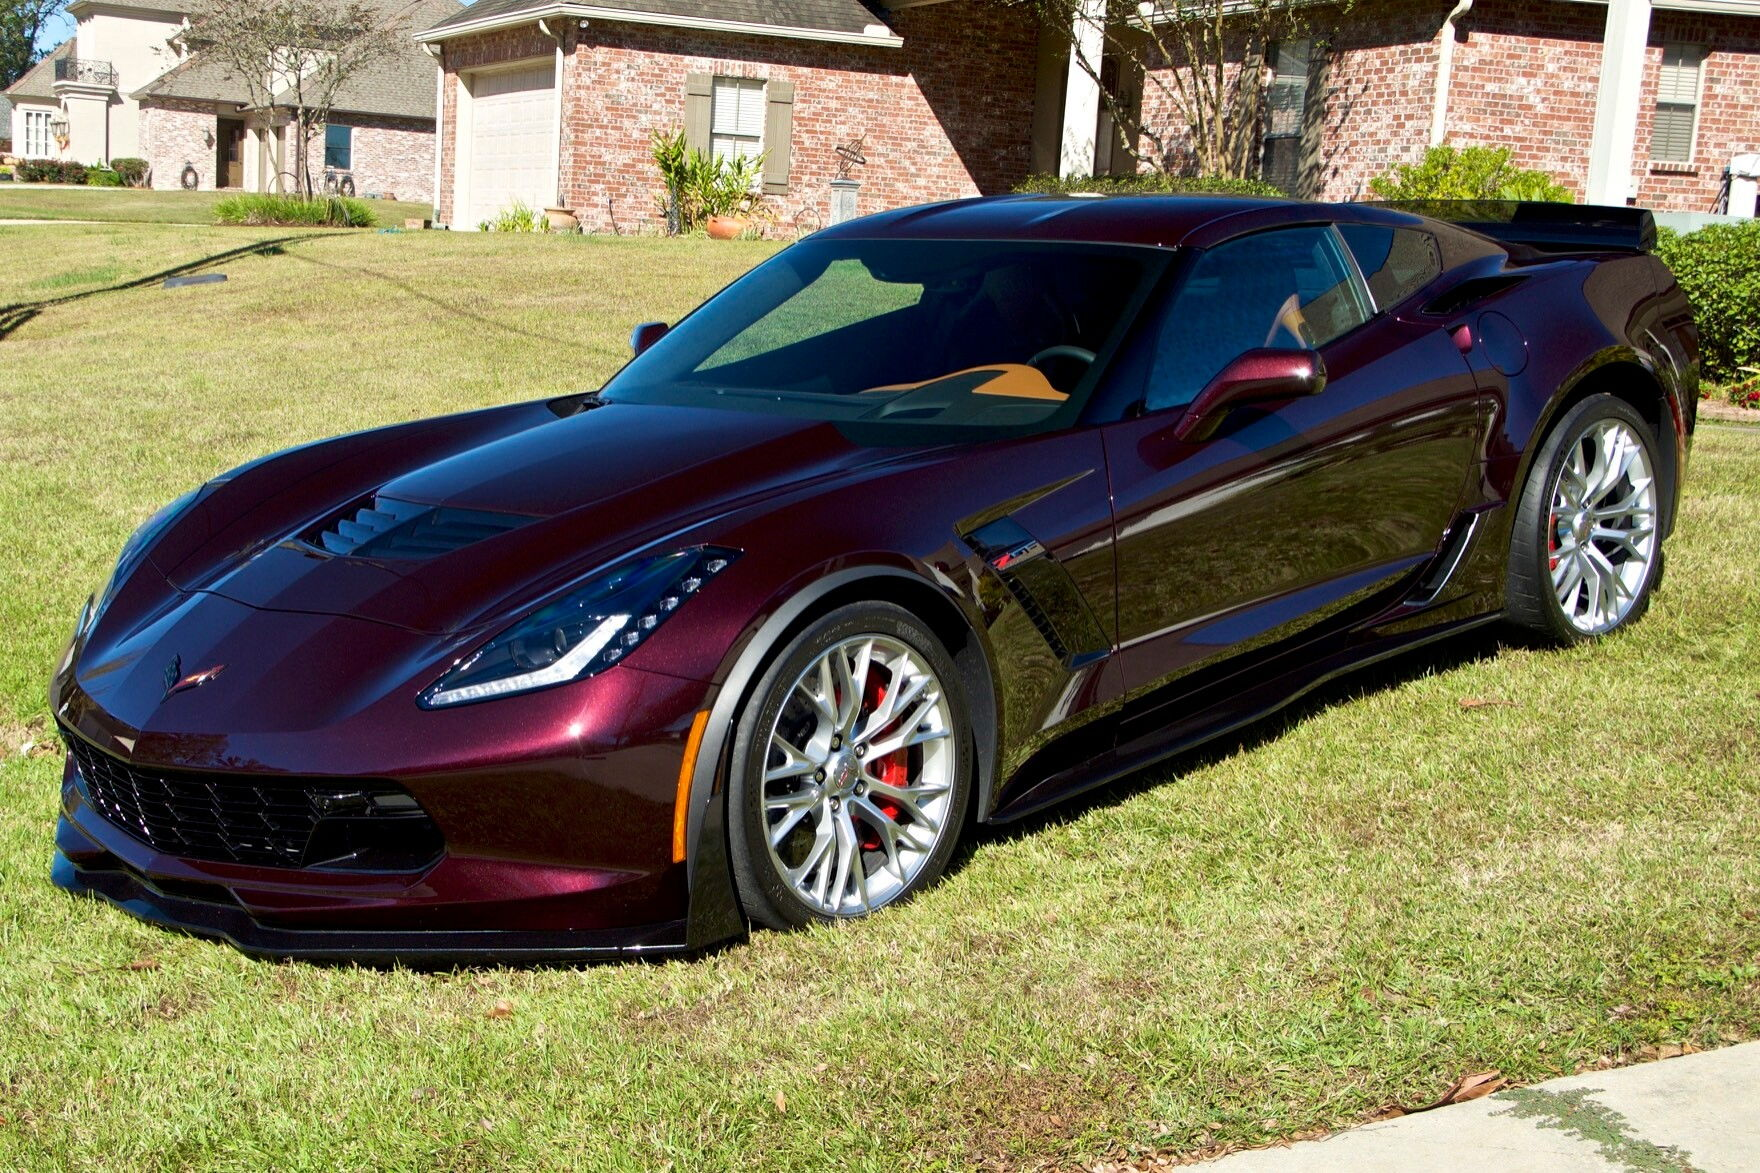 New 17 Black Rose Pics In The Sun Page 2 Corvetteforum Chevrolet Corvette Forum Discussion